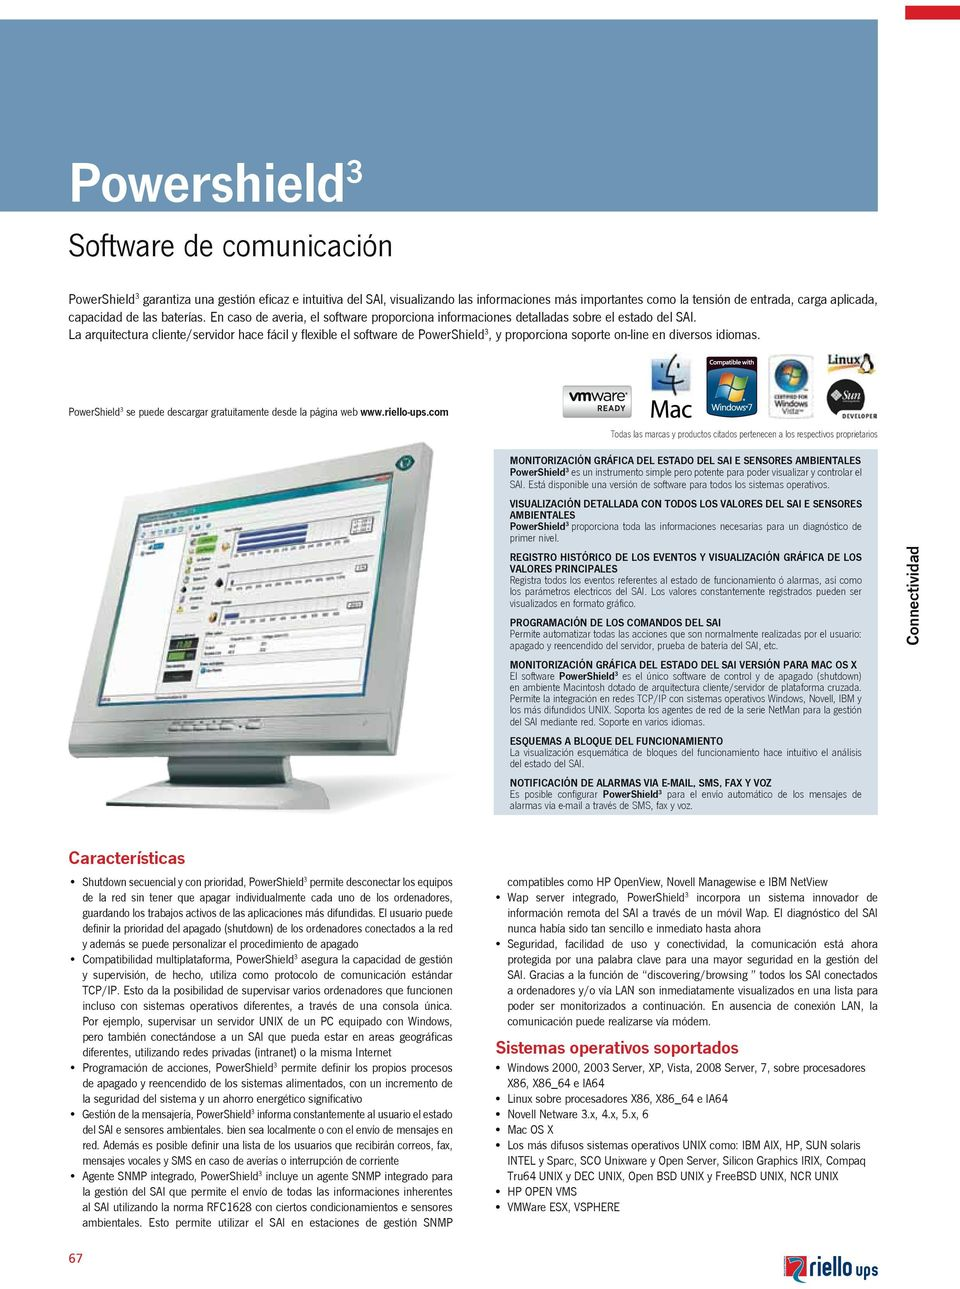 Powershield 3 software de comunicaci n caracter sticas pdf for Arquitectura x86 pdf